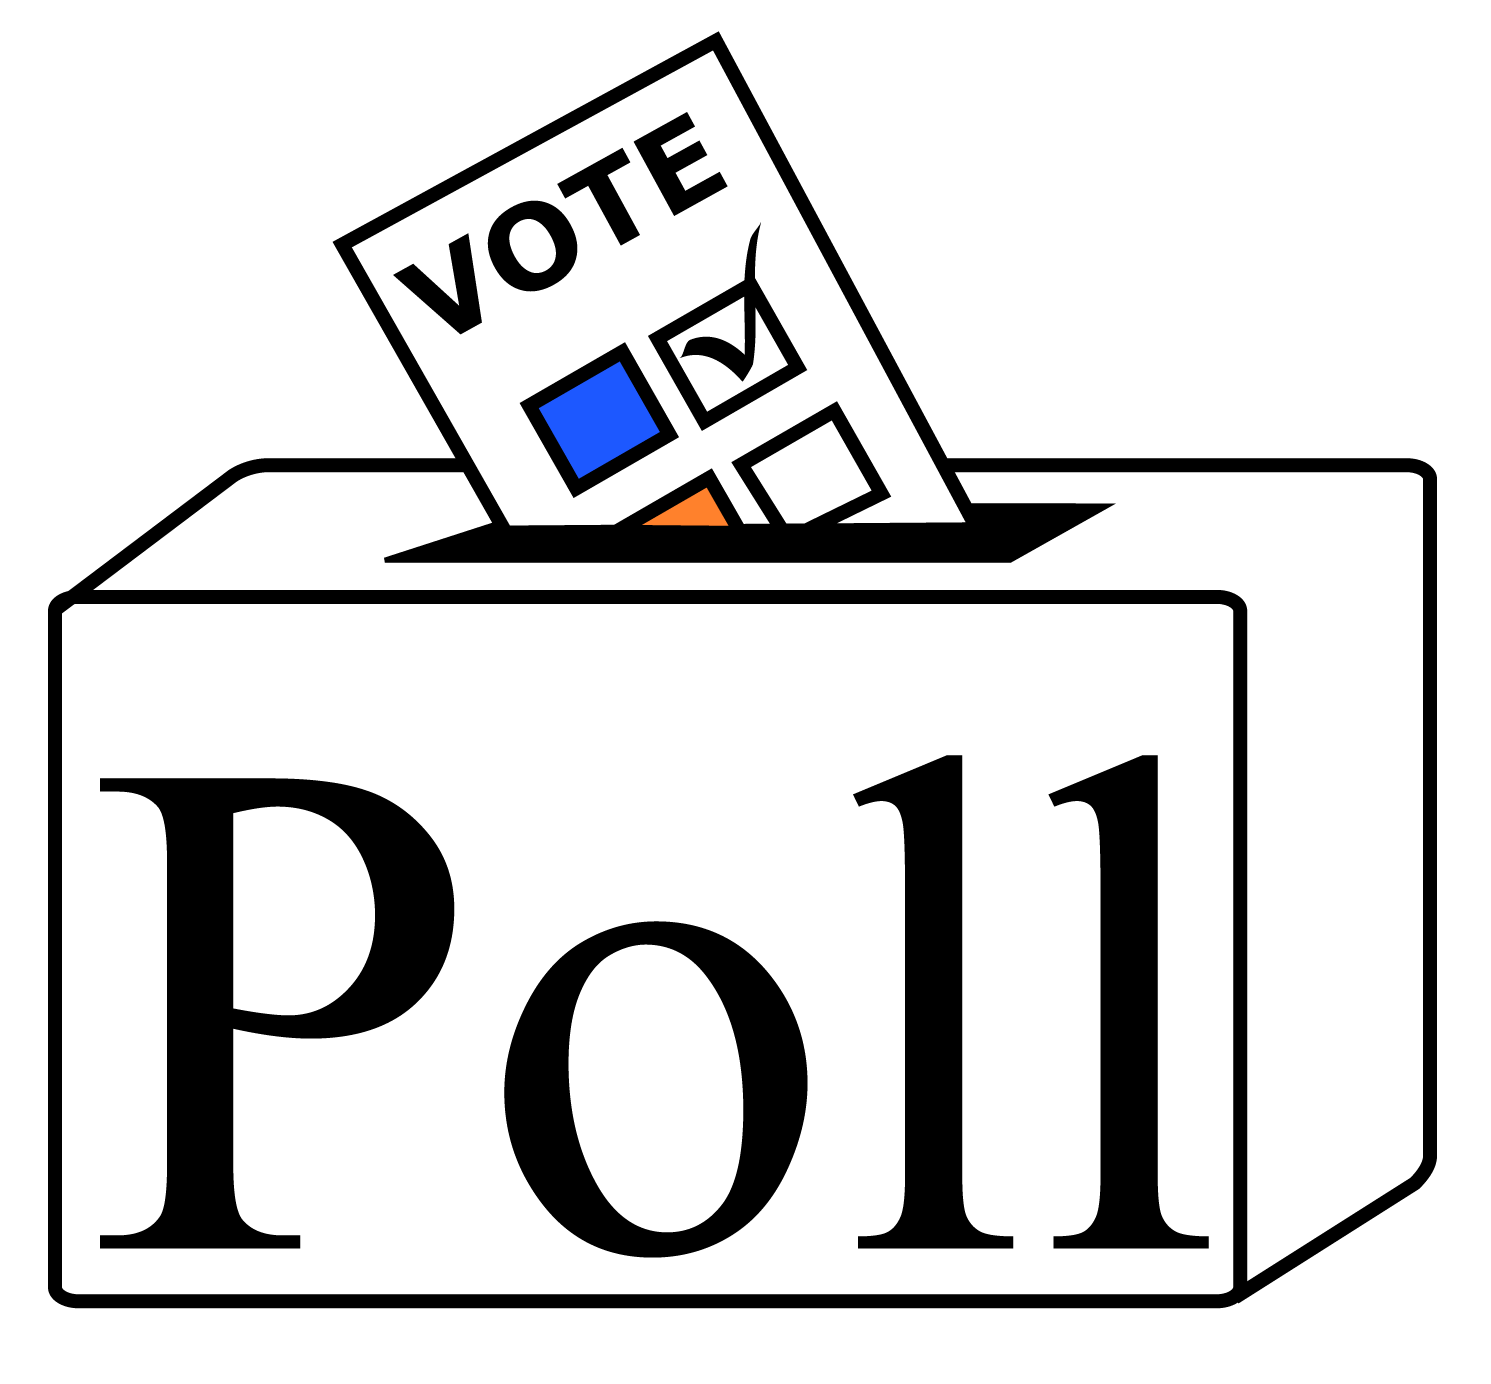 Your vote is secret. Voting clipart election candidate